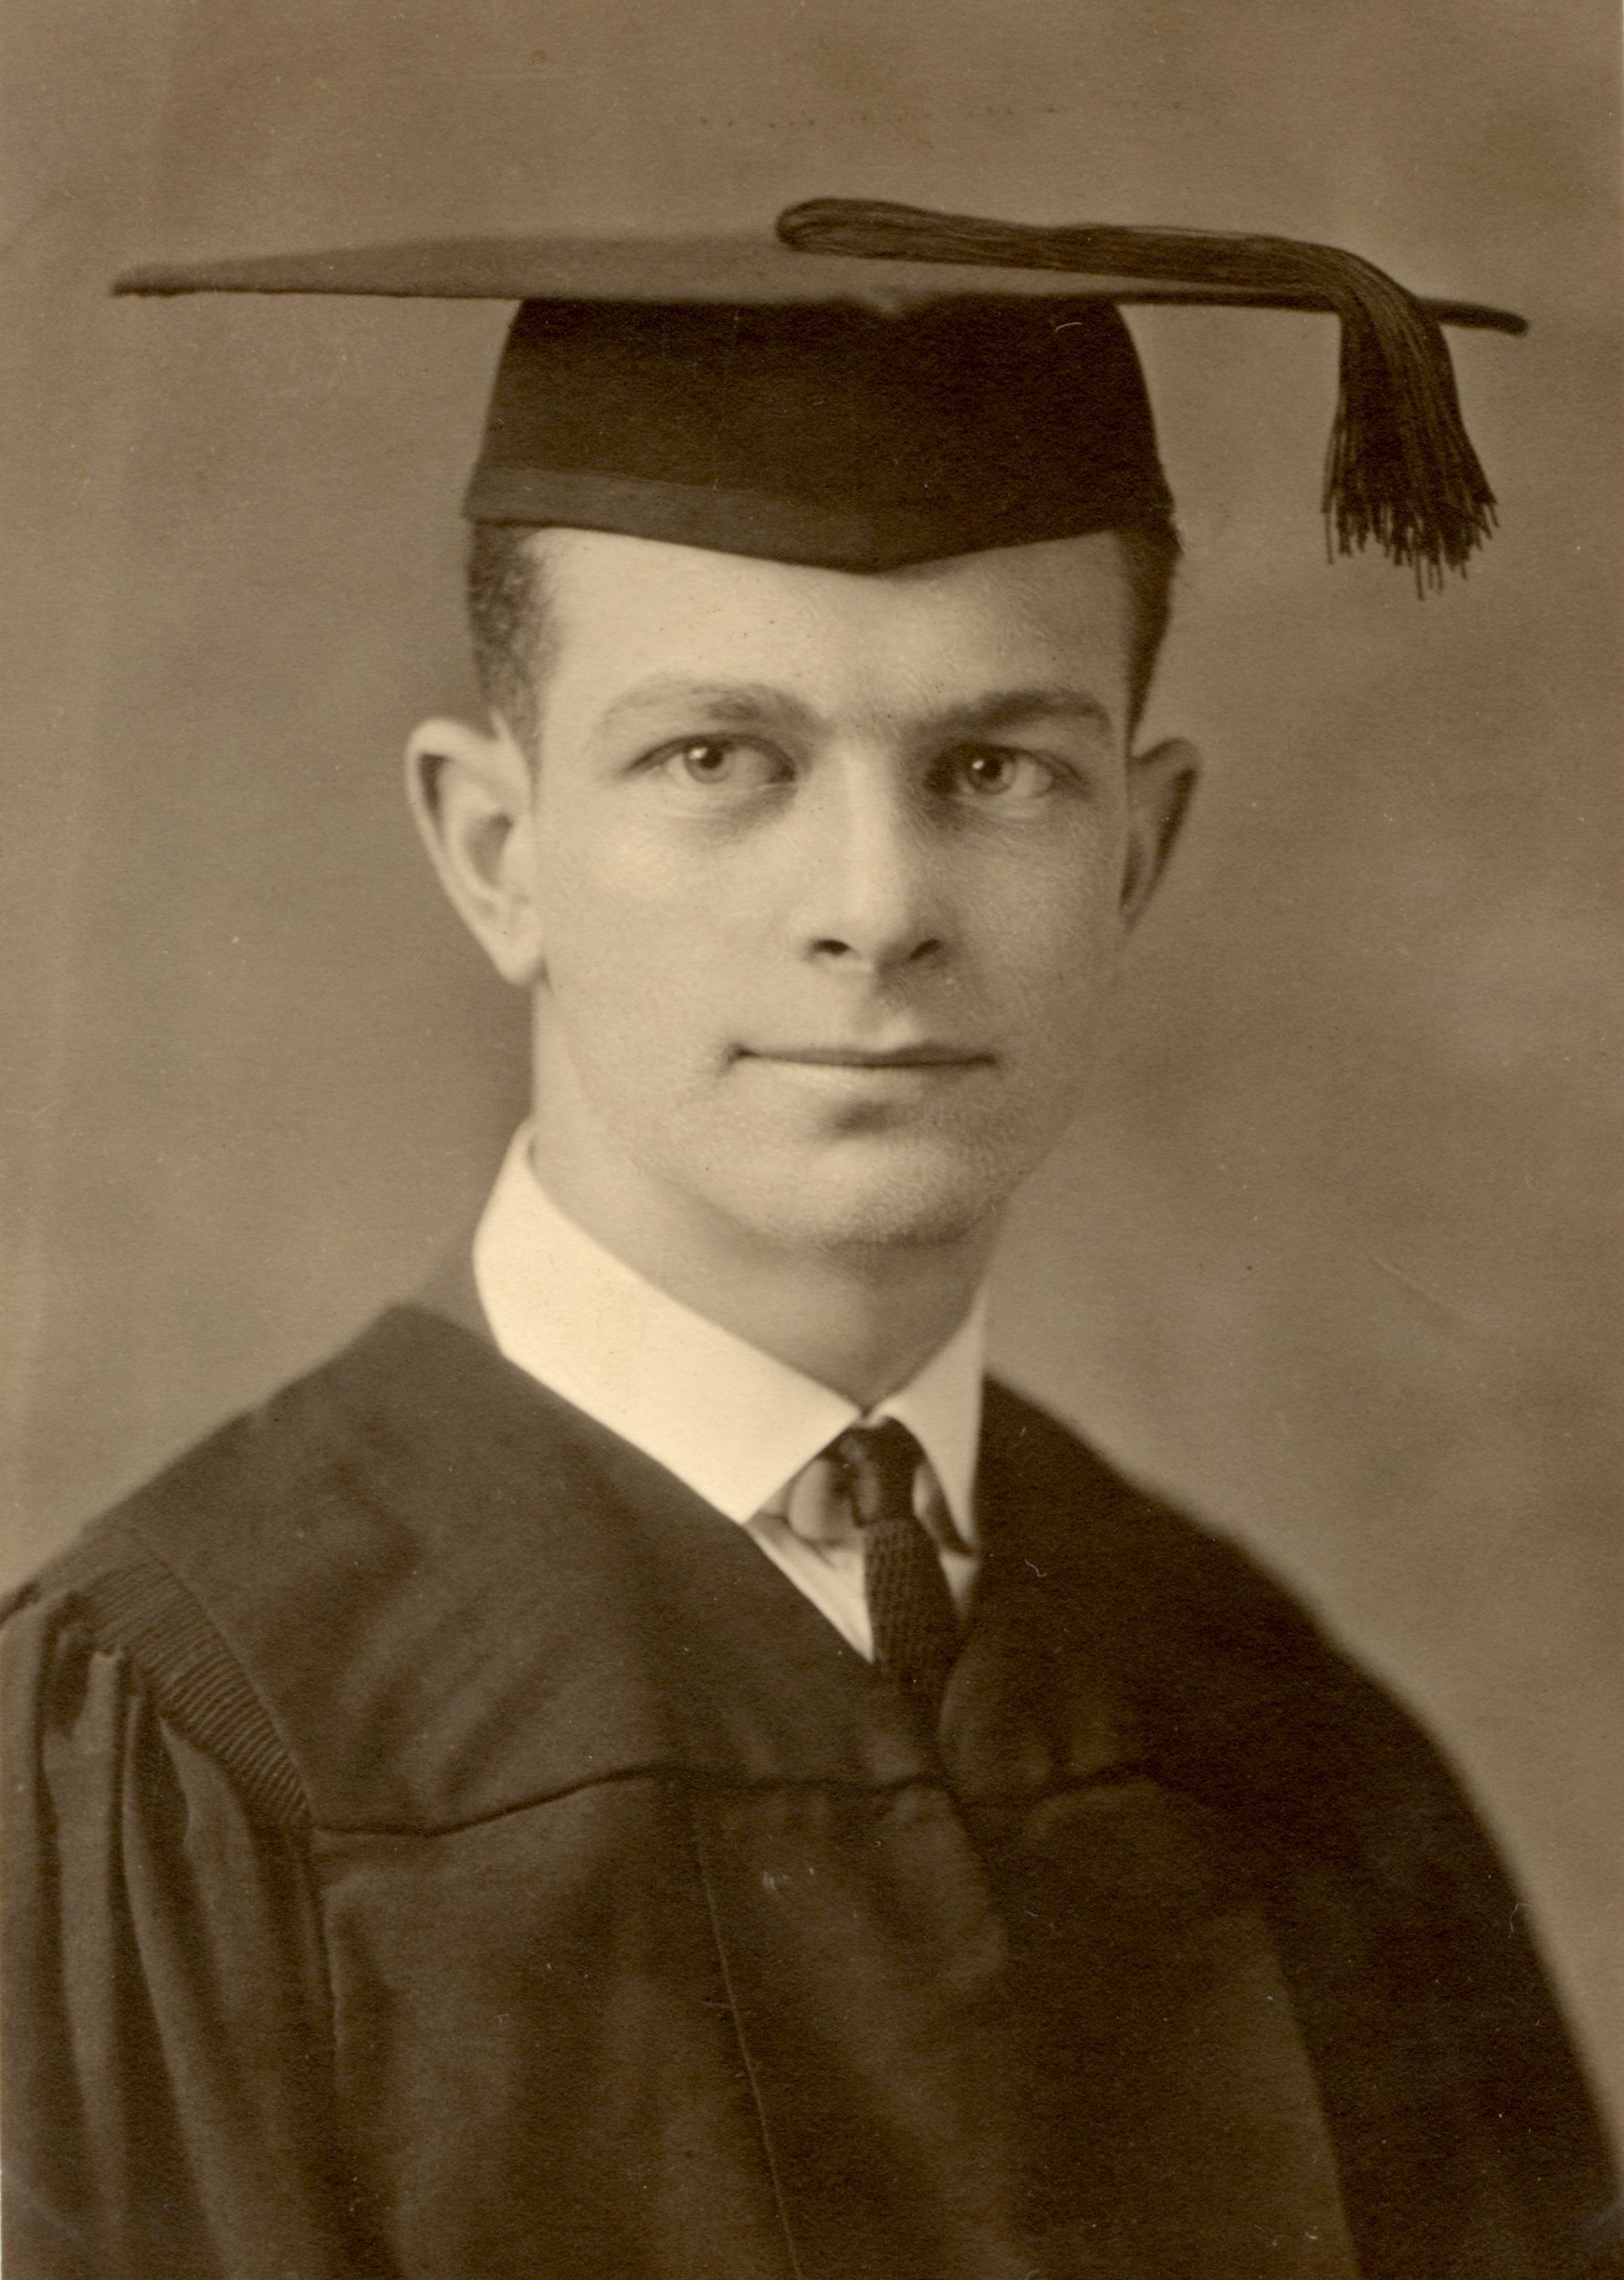 https://upload.wikimedia.org/wikipedia/commons/c/ca/LinusPaulingGraduation1922.jpg